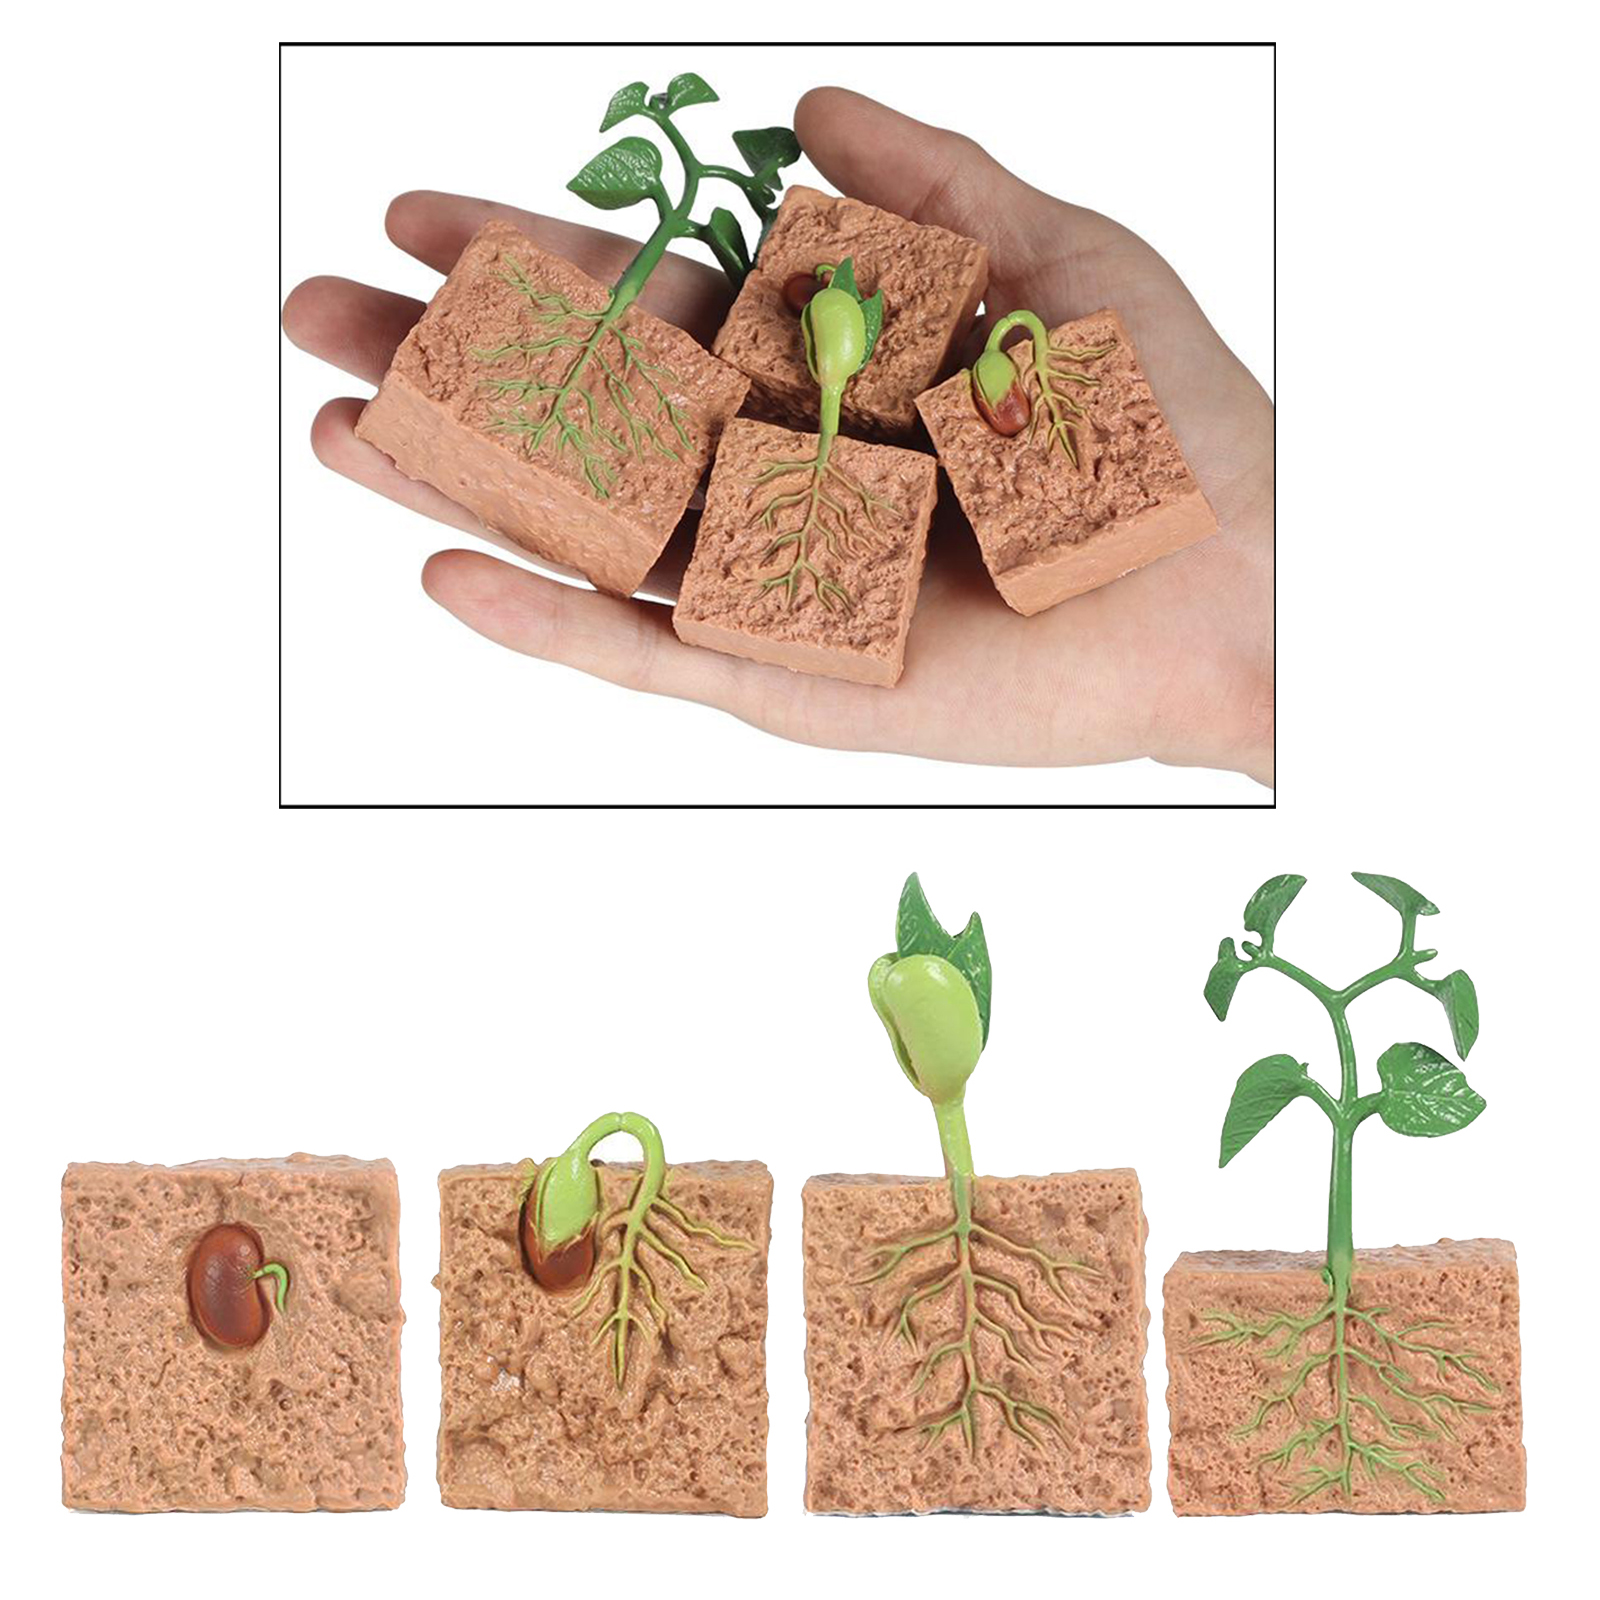 Kids Plant Seeds Growth Life Cycle Playset Cognitive Toys Teaching Aids 5